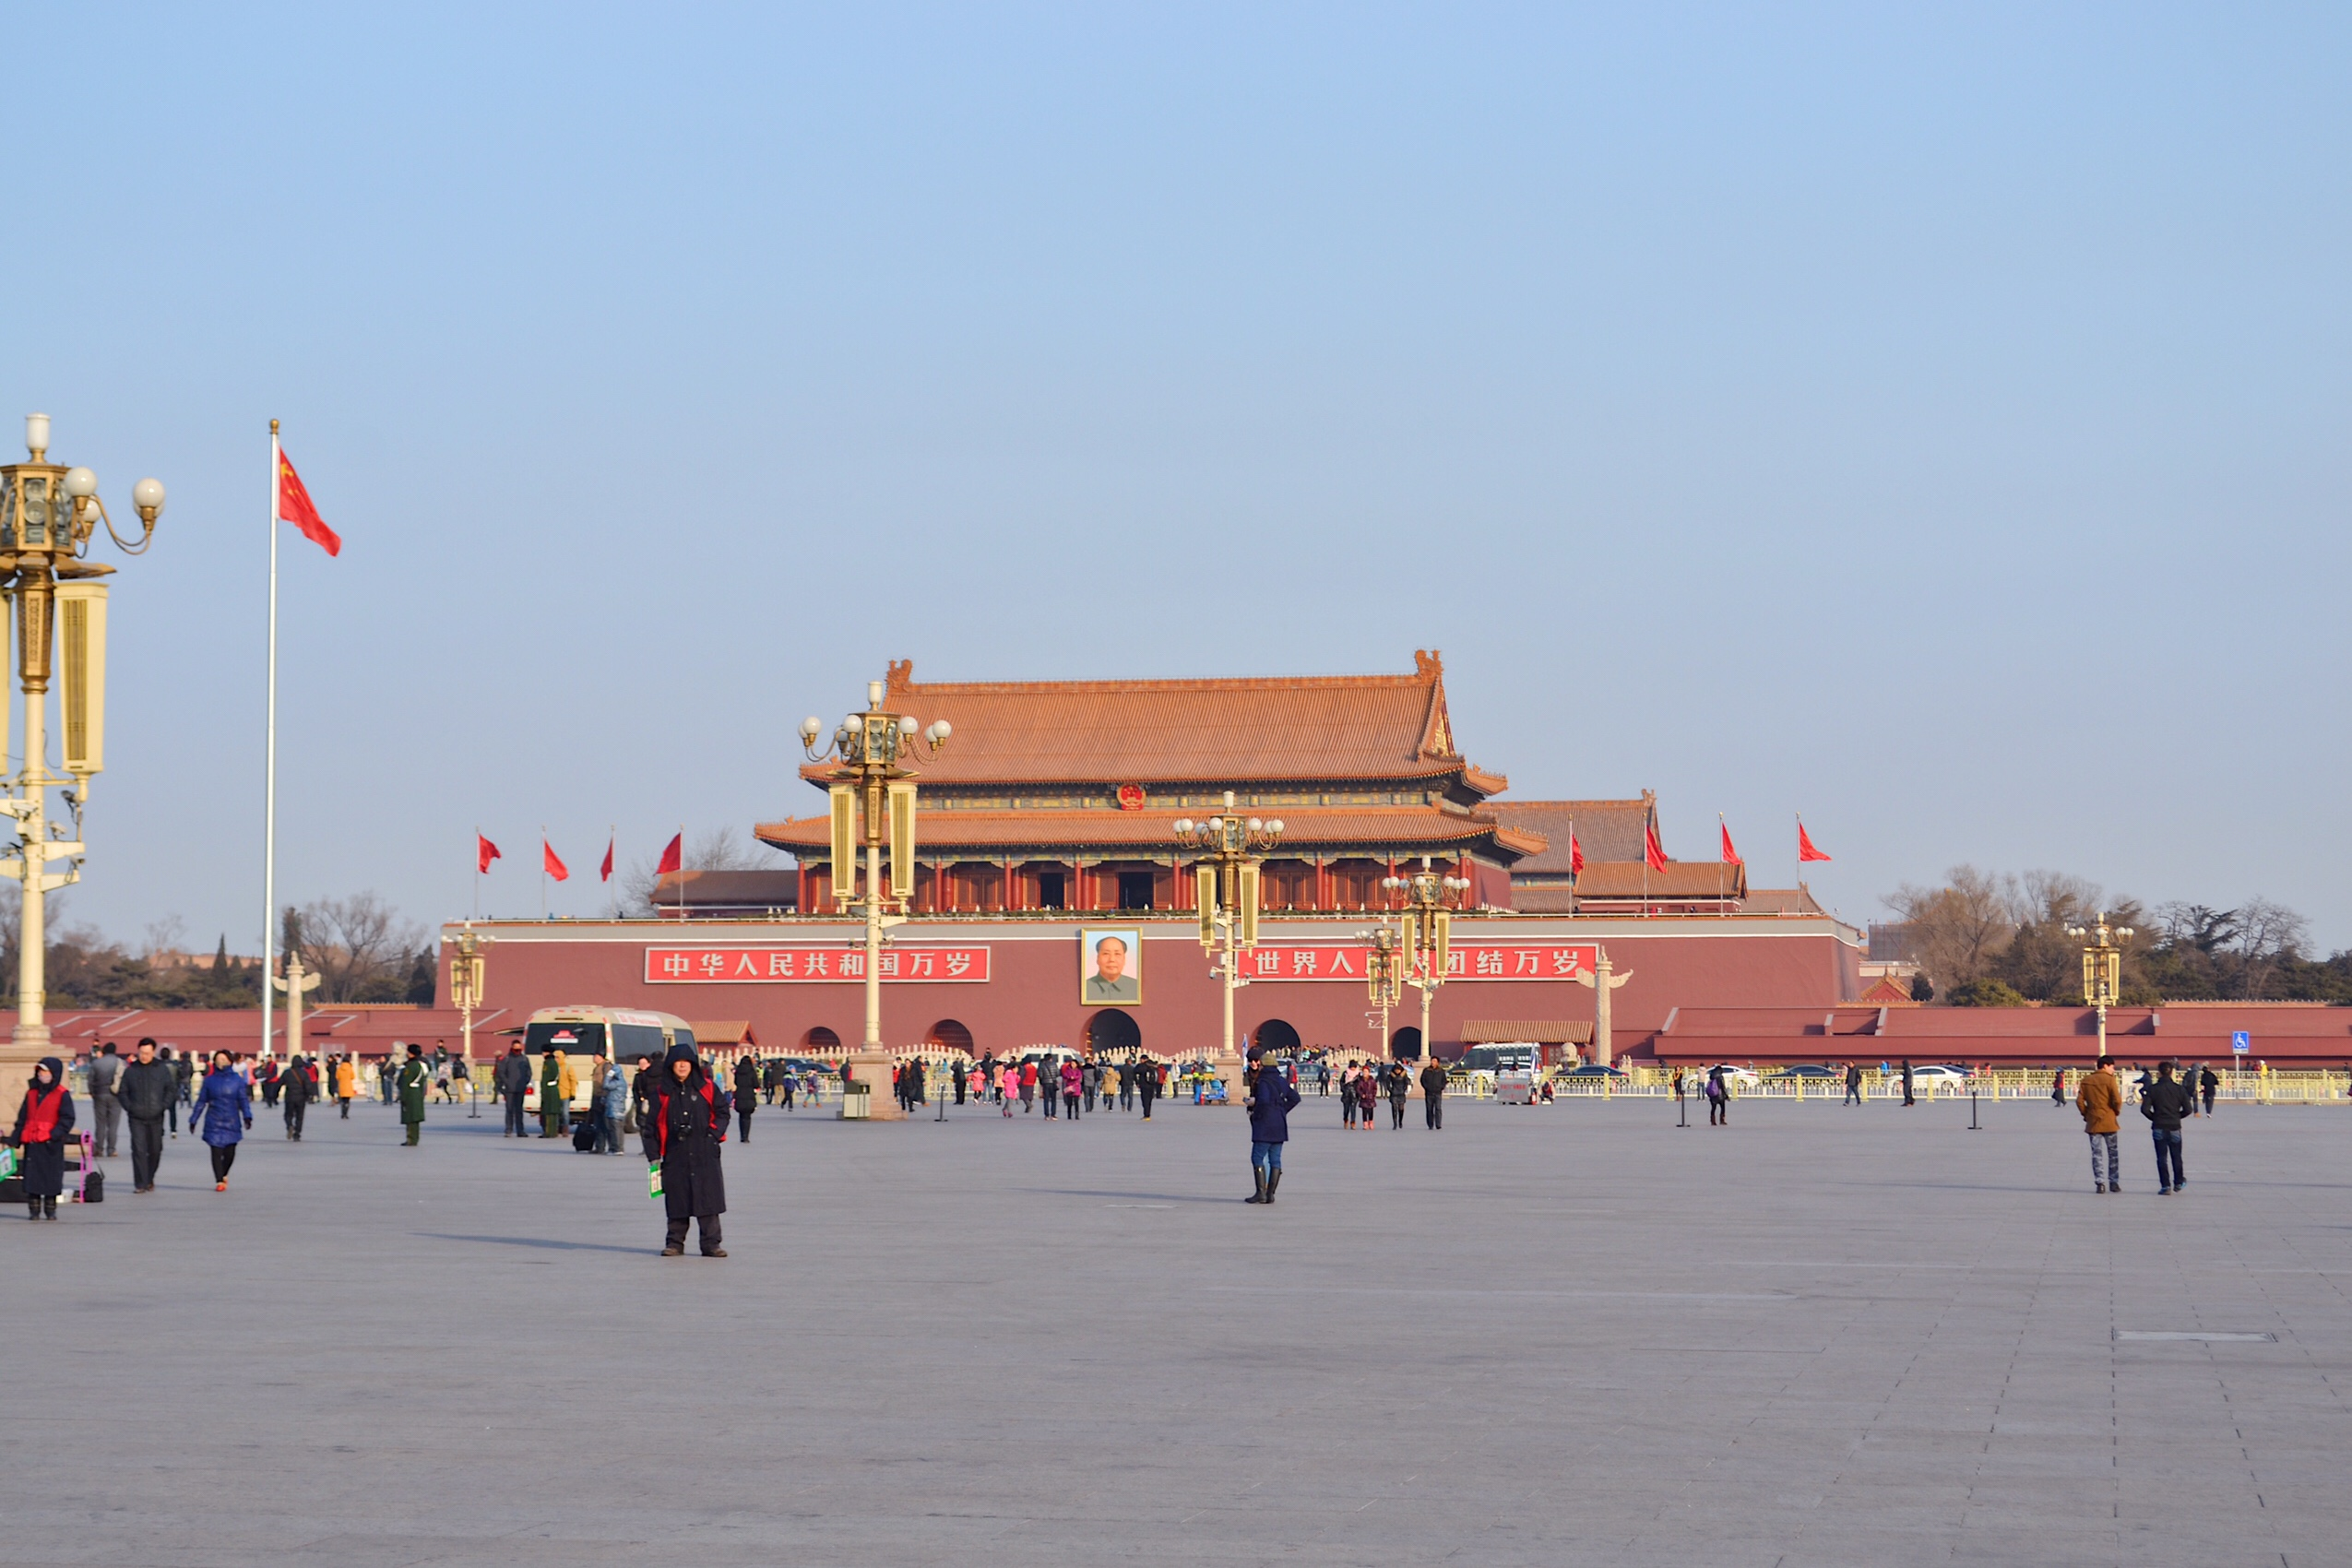 Image of tiananmen square in Beijing, China